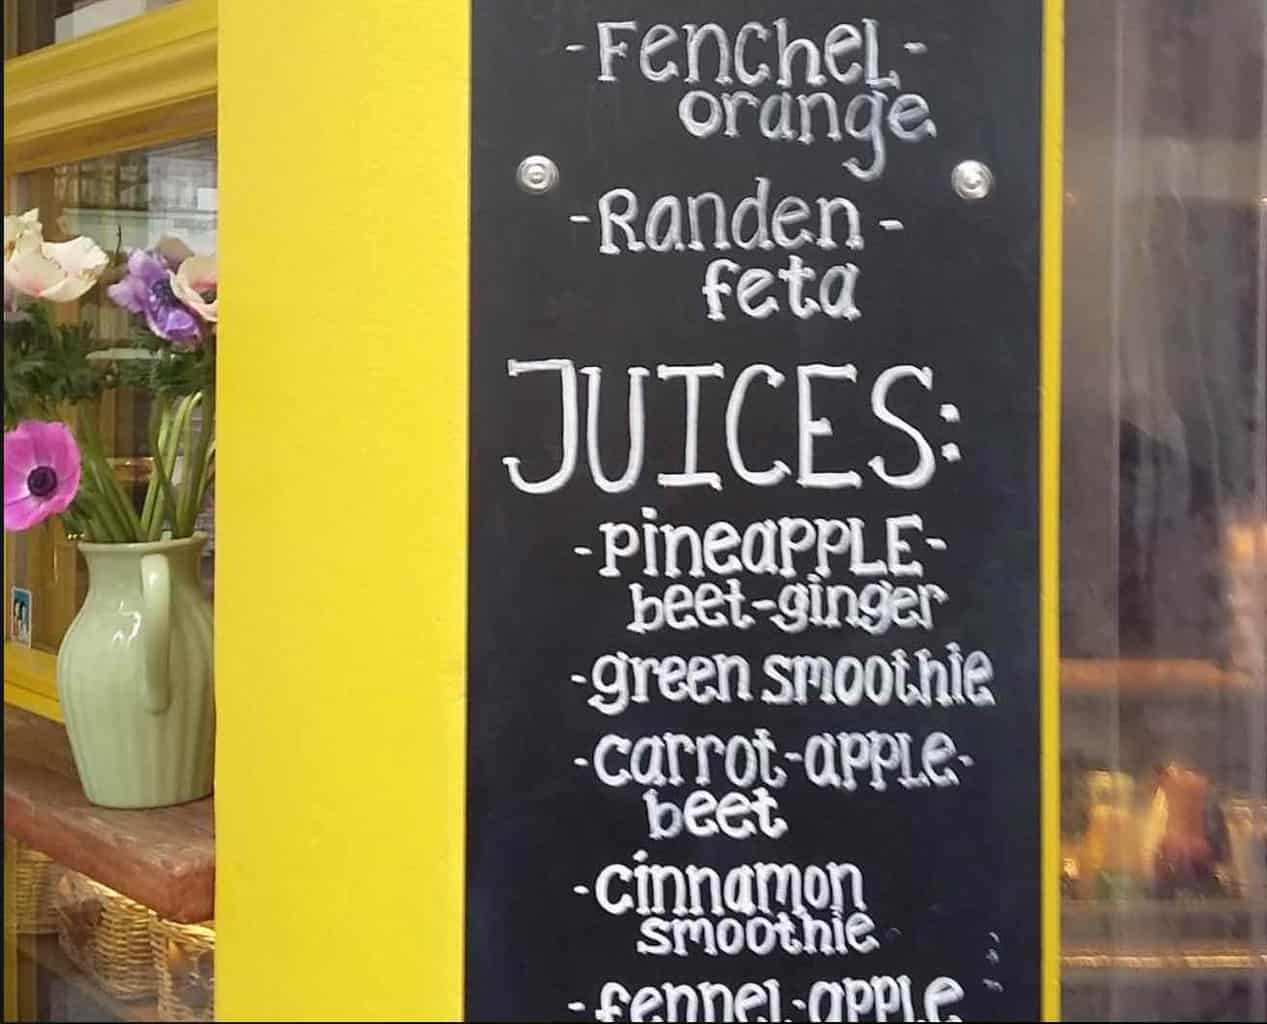 Saftlade Zurich - top juice bars Zurich